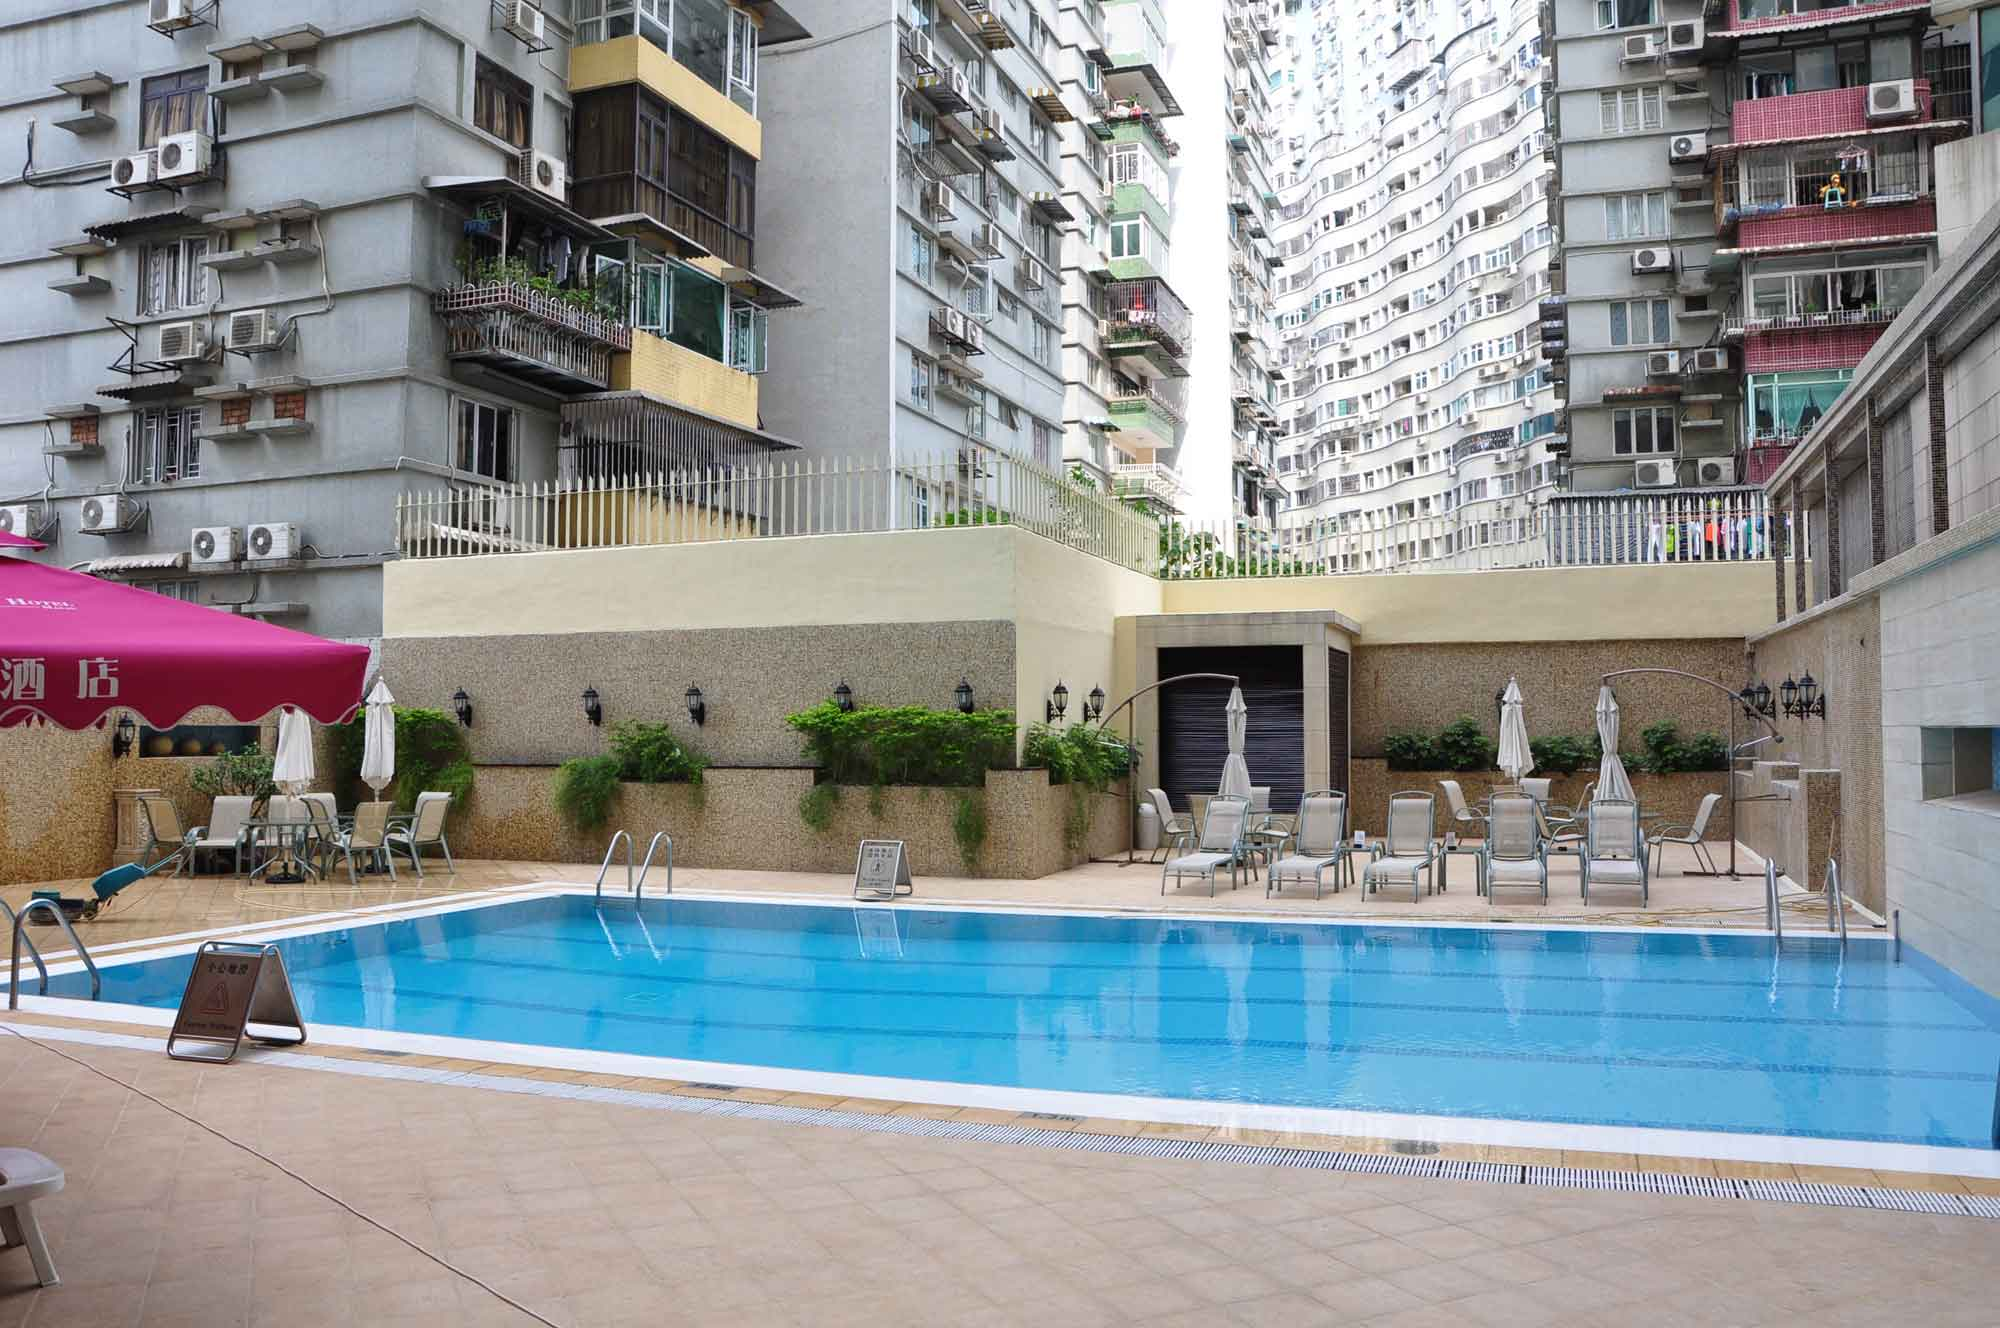 Grandview Hotel Macau outdoor pool and deck